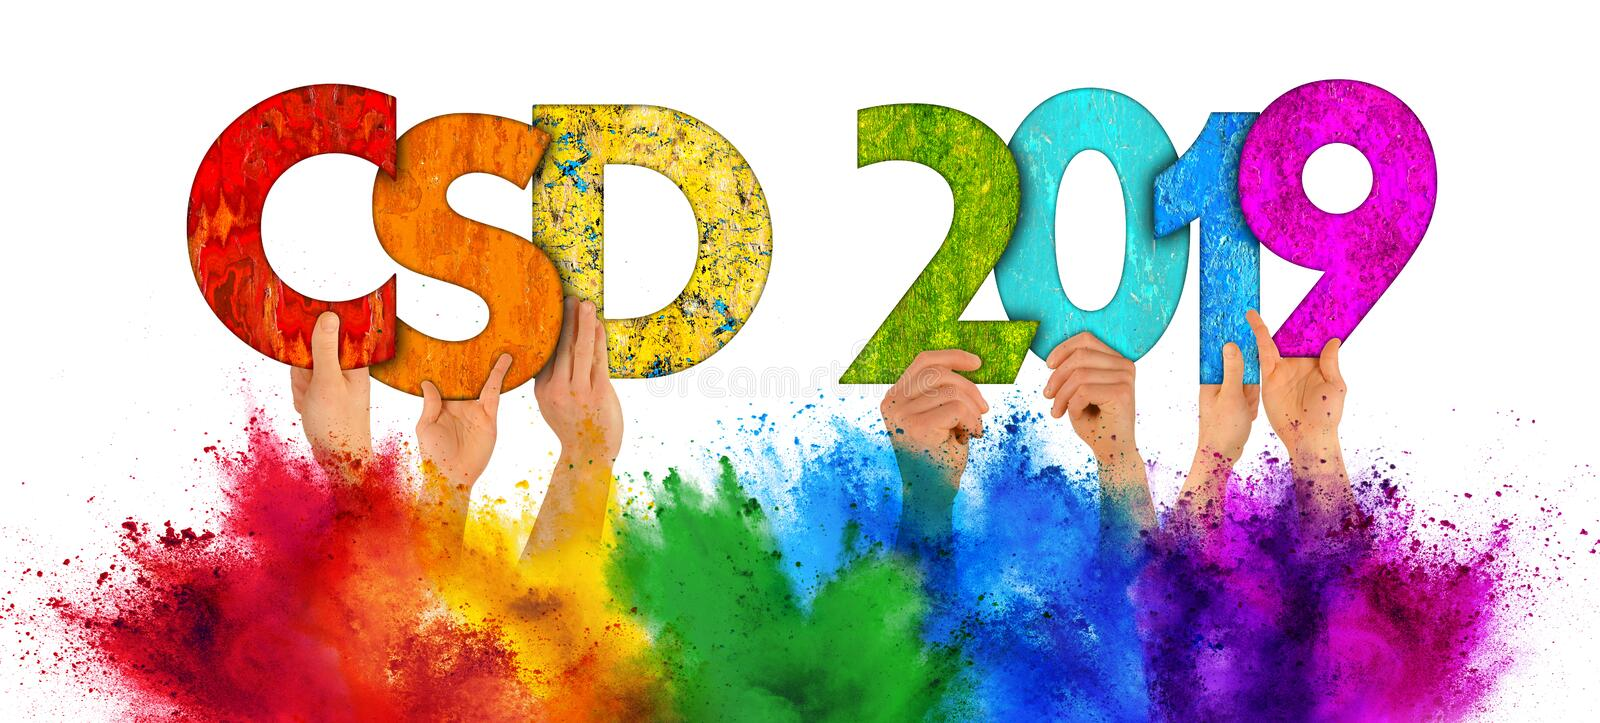 People holding up wooden Christopher street day csd 2019 colorful rainbow lettering holi powder color splash  white. People arms hands holding up colorful wooden stock photography